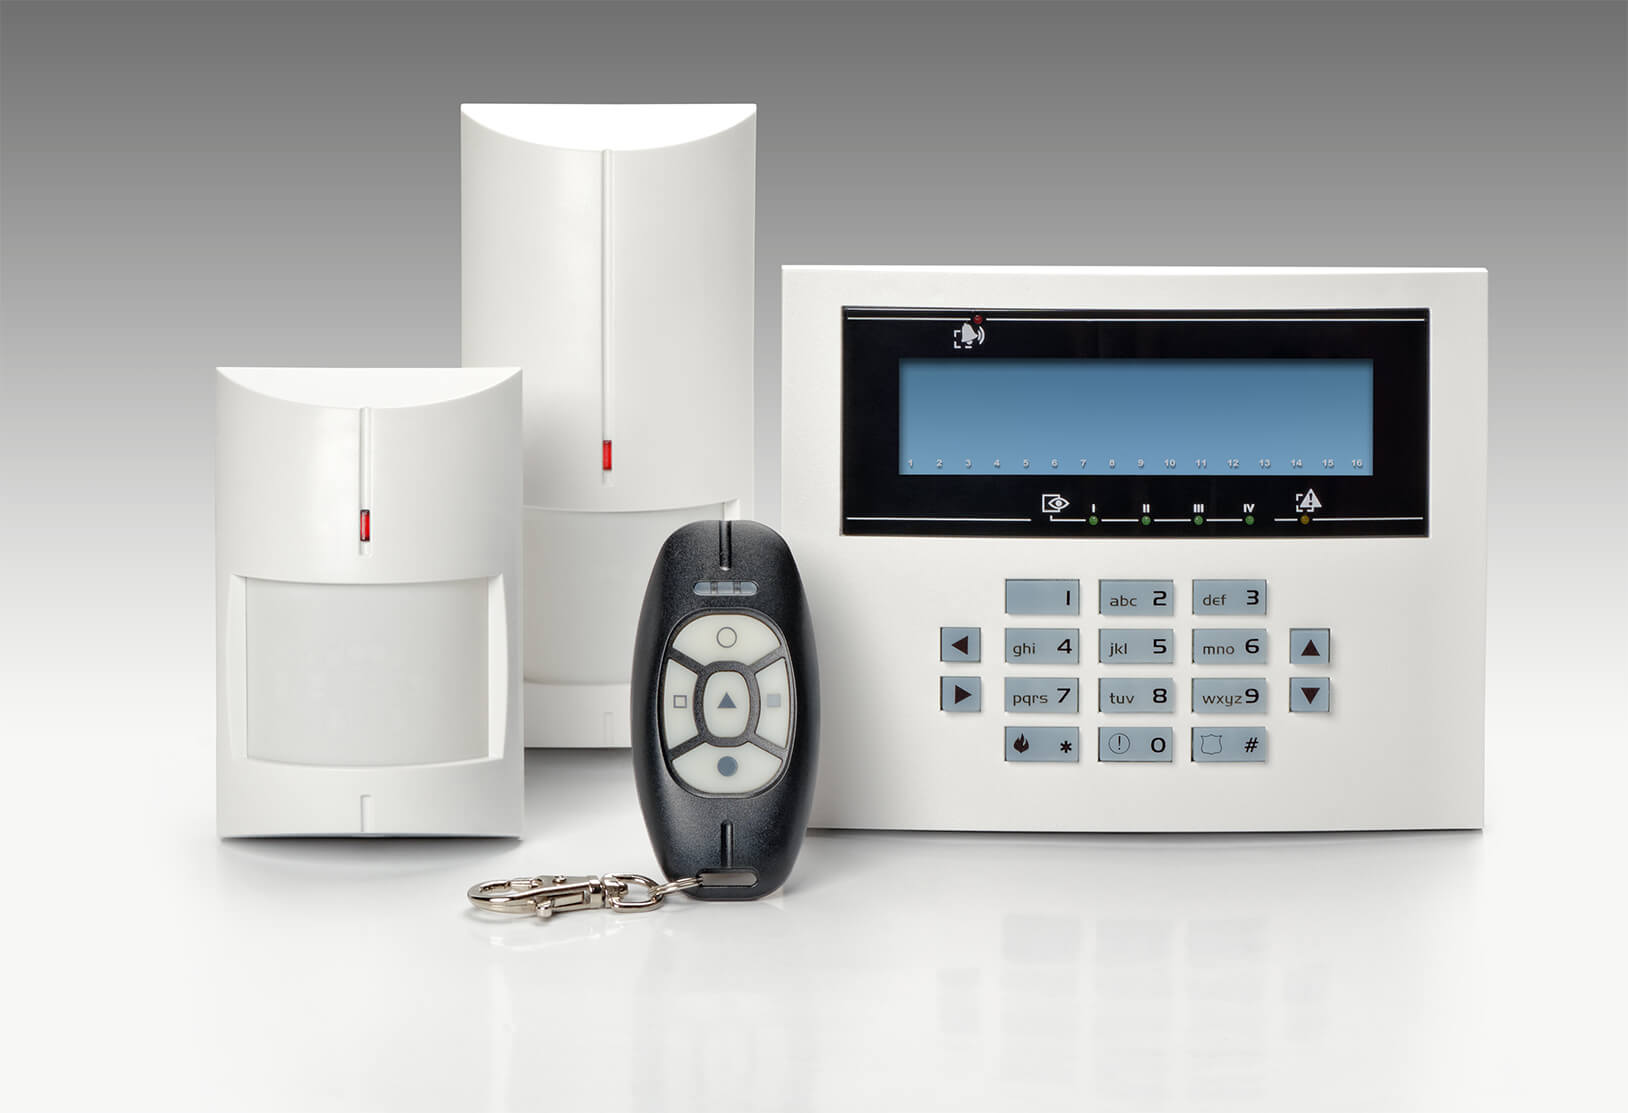 Commercial Burglar Alarms For Business in Shepherd\\\'s Bush W12  - Local Shepherd\\\'s Bush W12 burglar alarm company.Call 02078872244 - Dedicated to Safety & Security. Companies, shops and homes ..